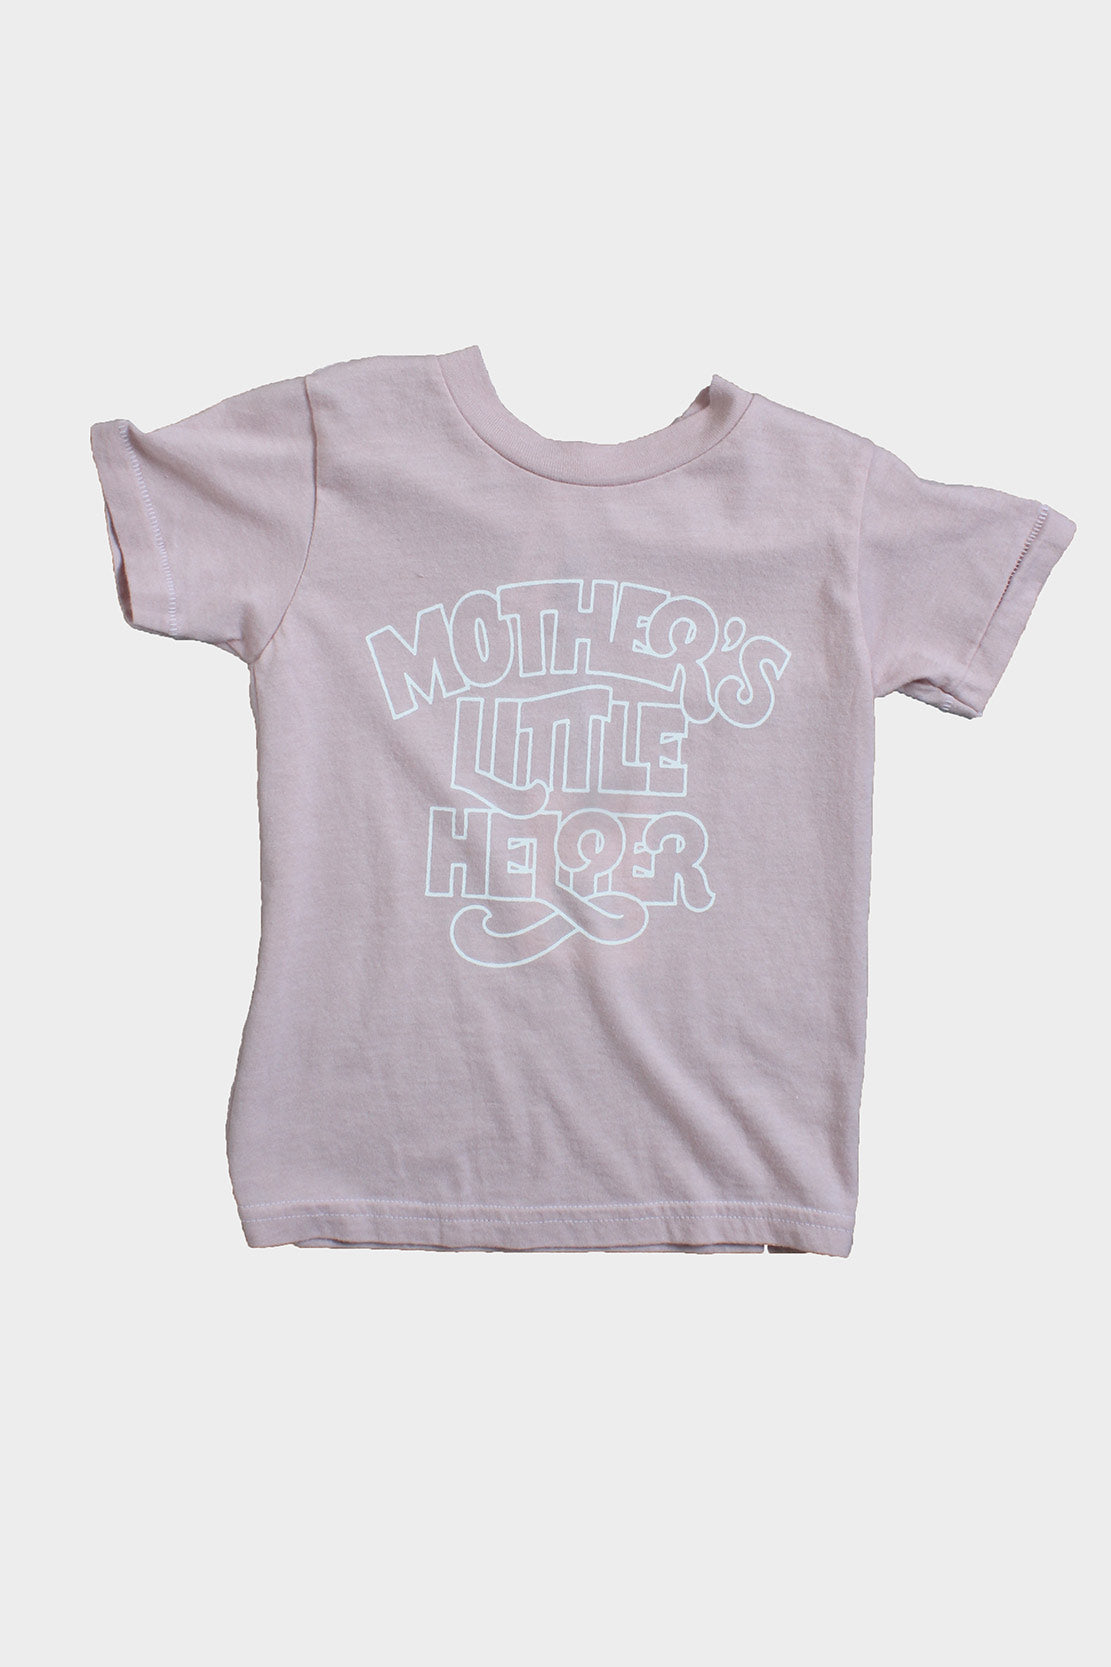 mothers little helper tee